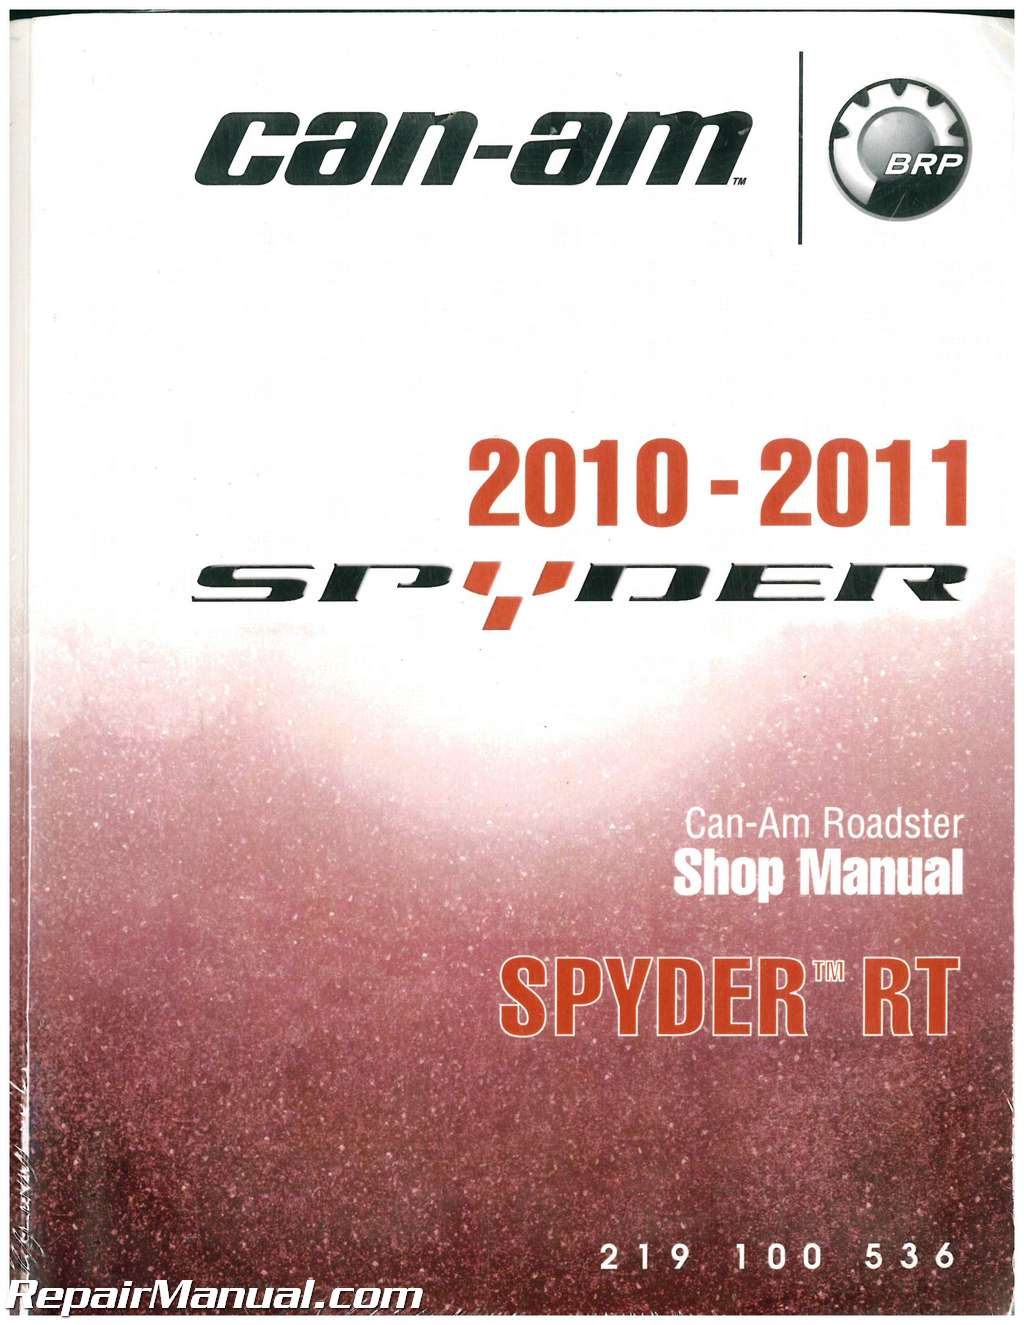 Can am spyder rt shop manual array 2010 2011 can am spyder rt roadster service manual rh repairmanual fandeluxe Image collections